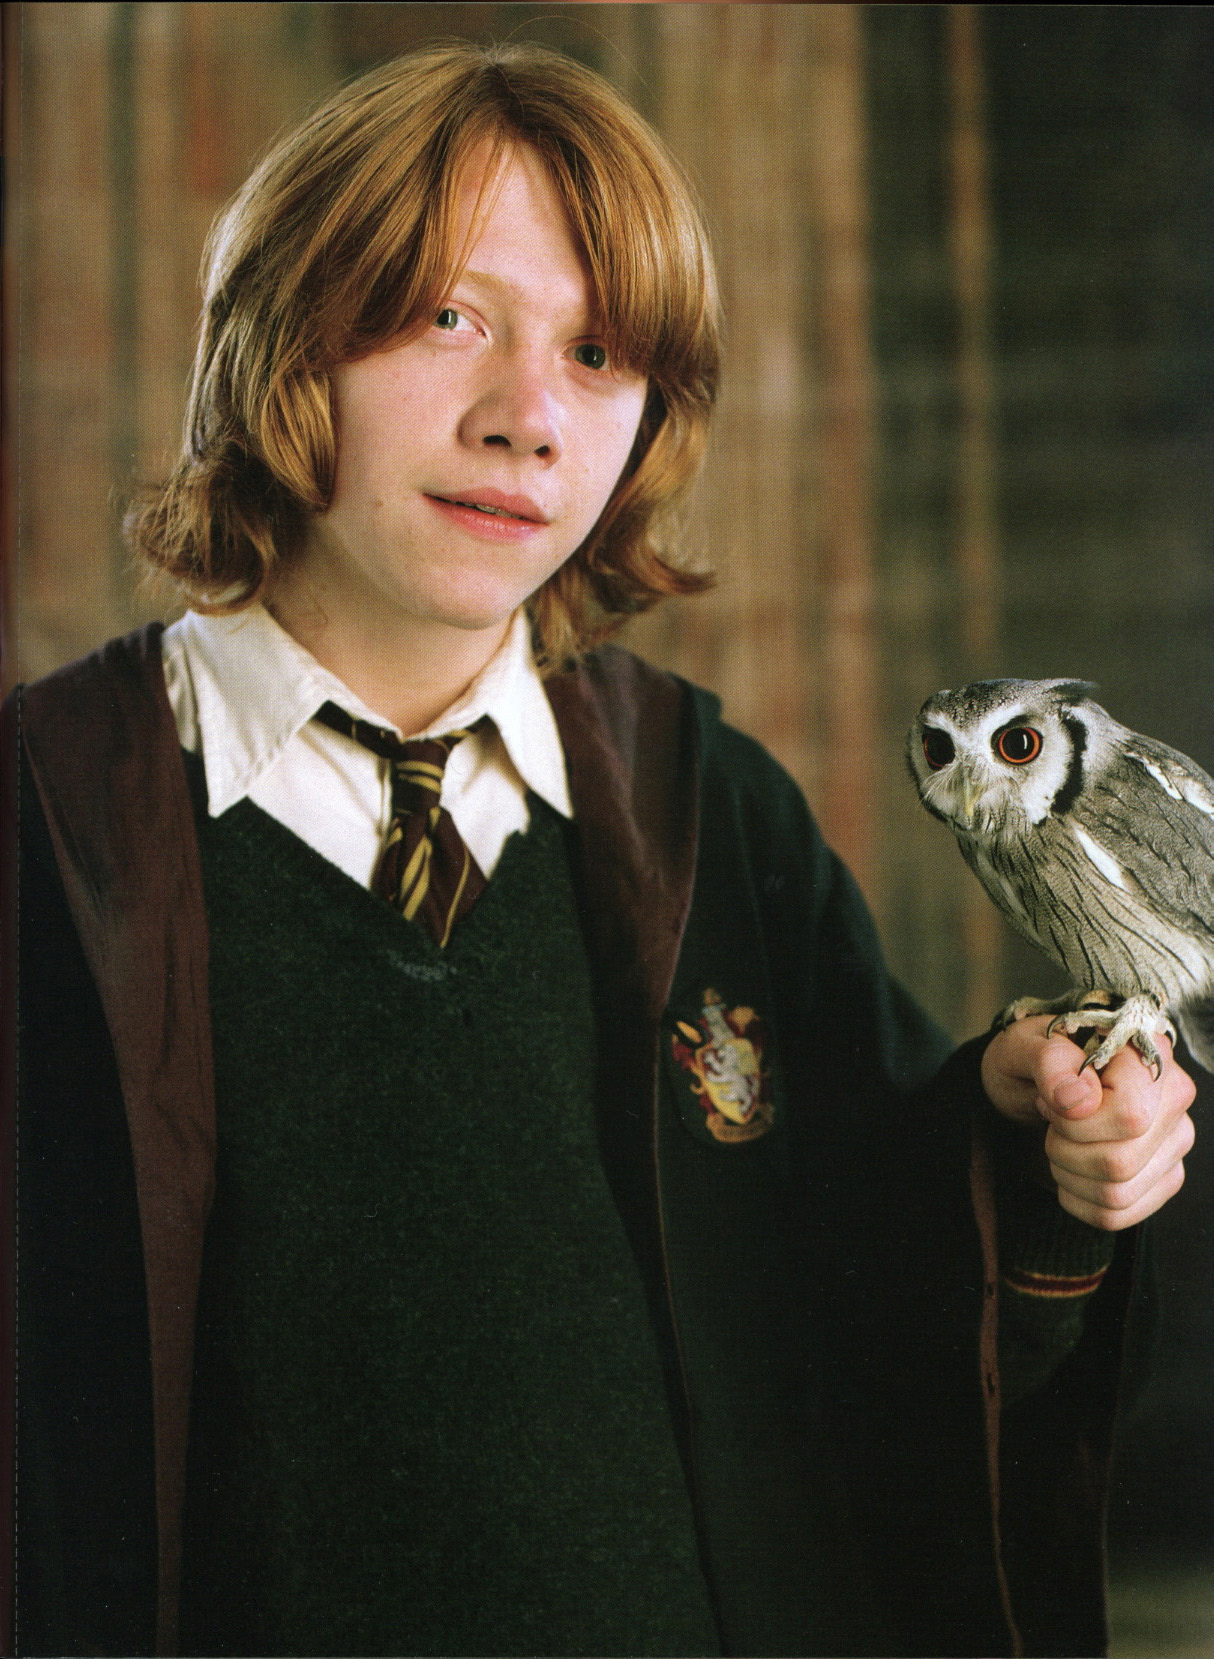 http://images1.wikia.nocookie.net/__cb20071106150302/harrypotter/fr/images/e/ef/PromoHP4_Ron_Coq.jpg